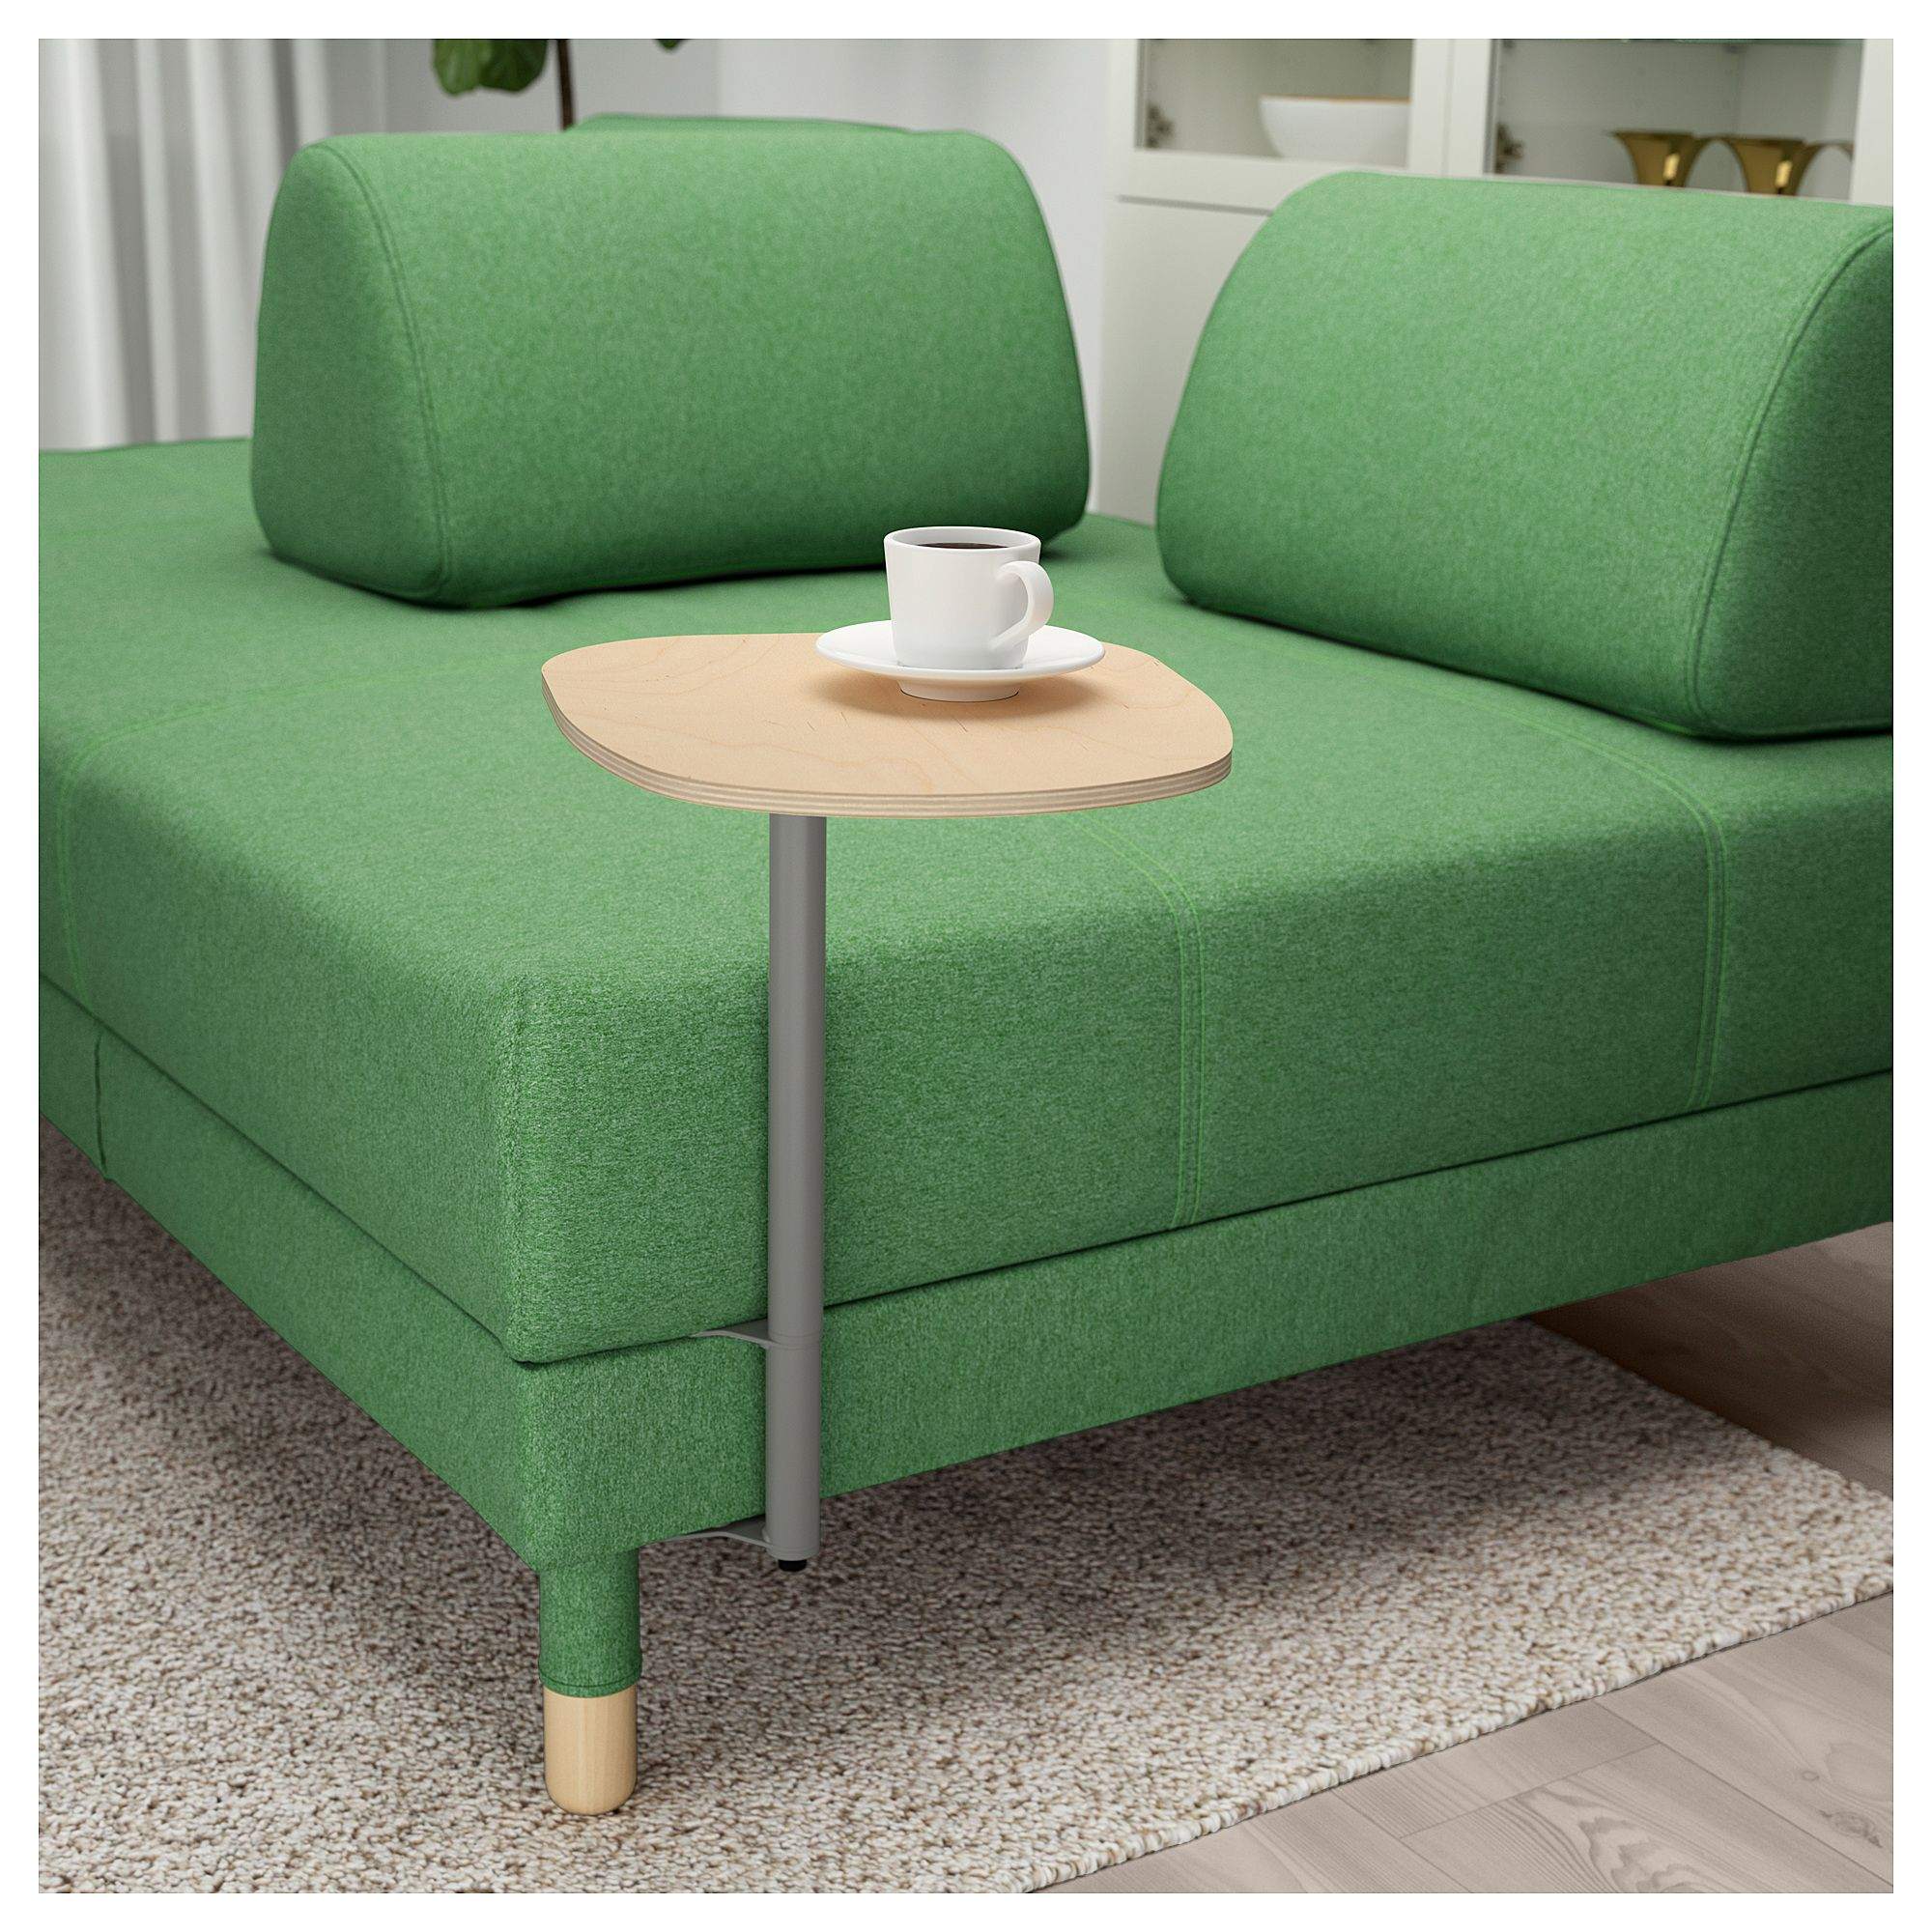 Flottebo Bettsofa Mit Ablage Lysed Grun In 2019 Products